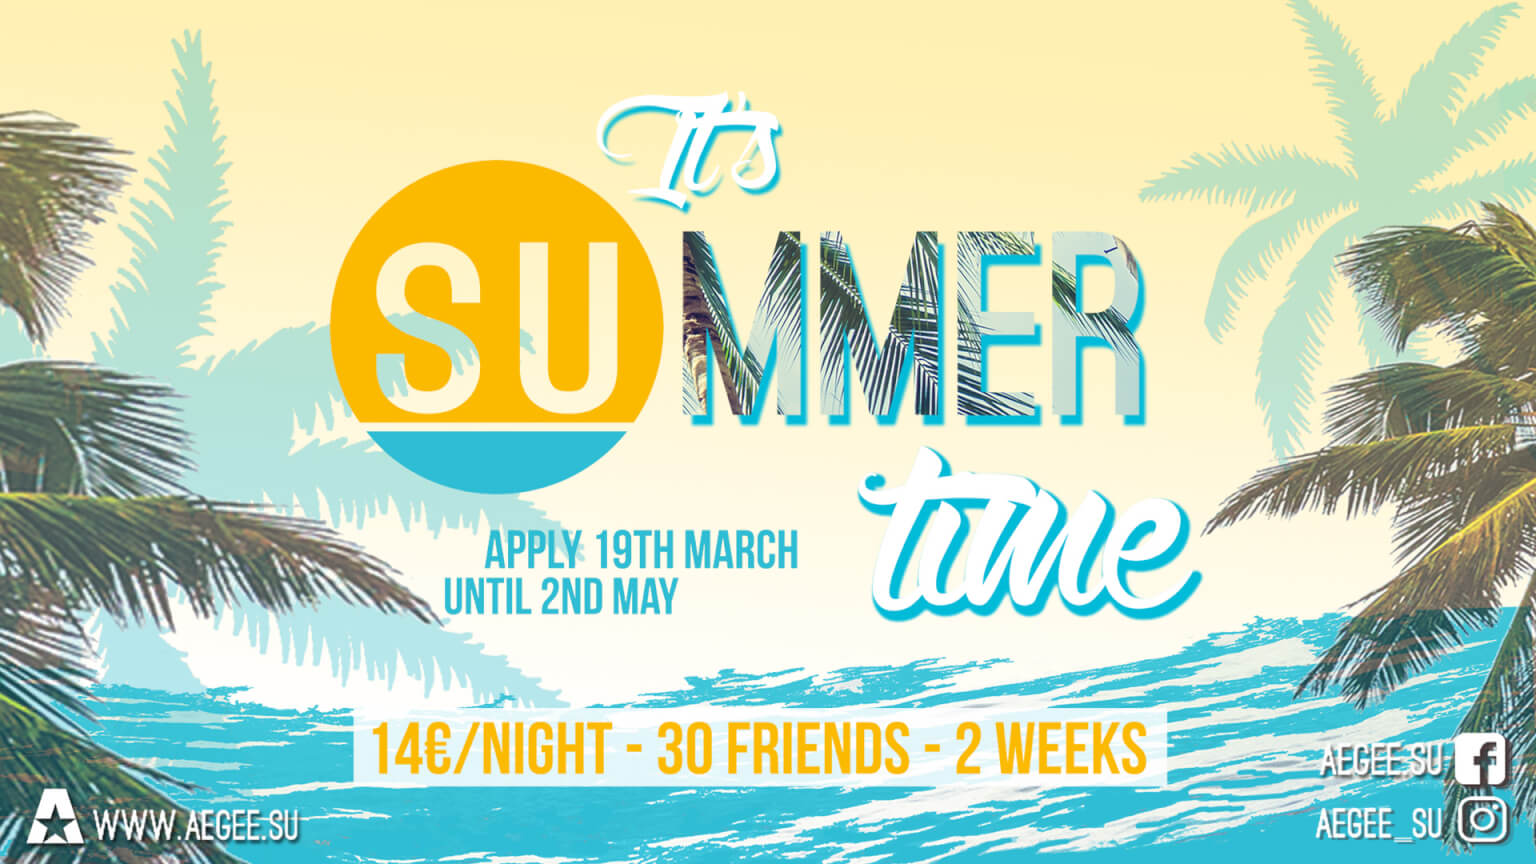 Apply for the summer of your life!